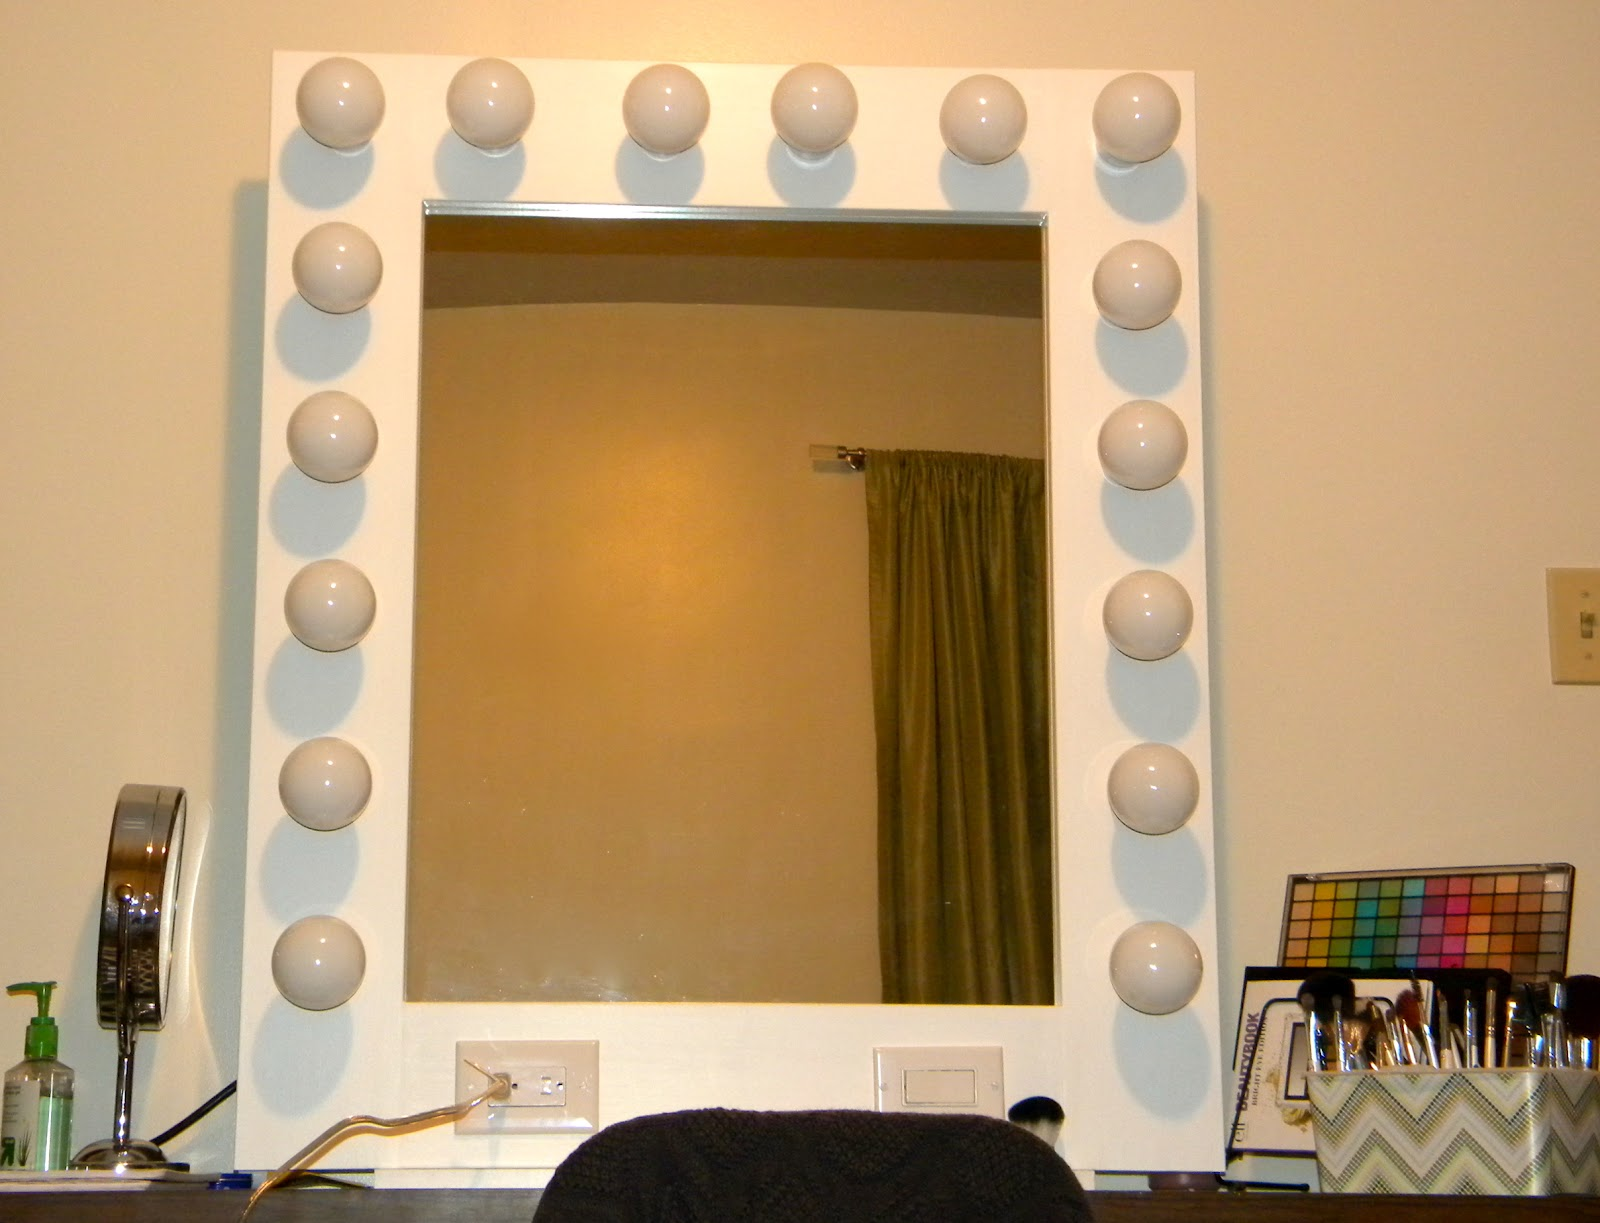 Vanity Mirror With Lights Sam S Club : BE~U~TIFUL { Imperfection is Beauty Madness is Genius}: Hollywood style Vanity Mirror Completed